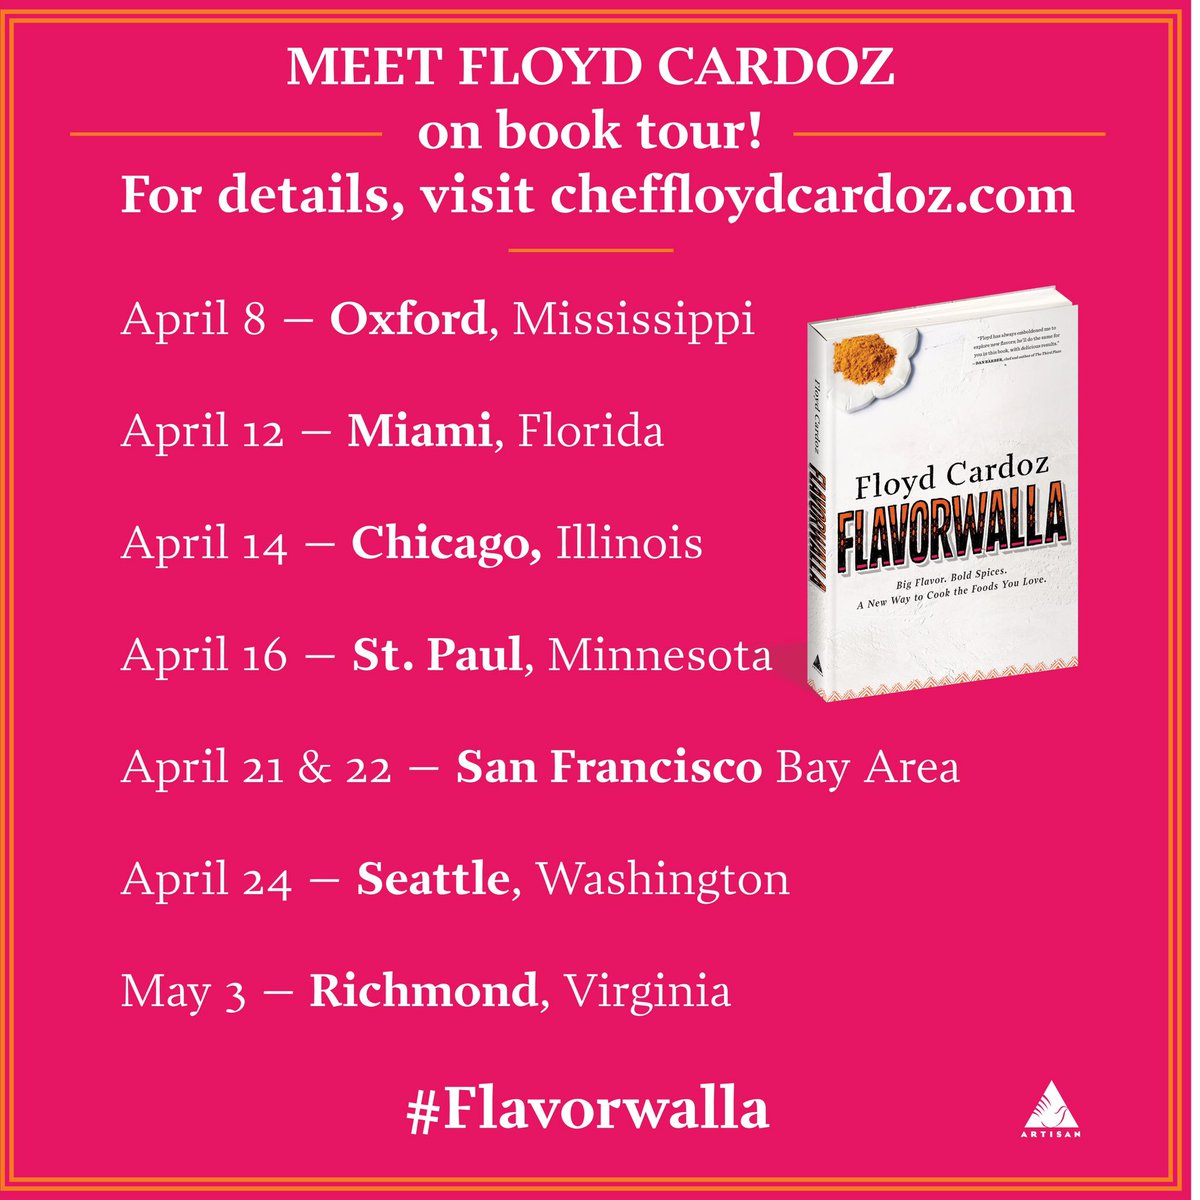 Finally my new book #Flavorwalla is released today I am excited to be visiting these cities. https://t.co/w23cekIjKQ